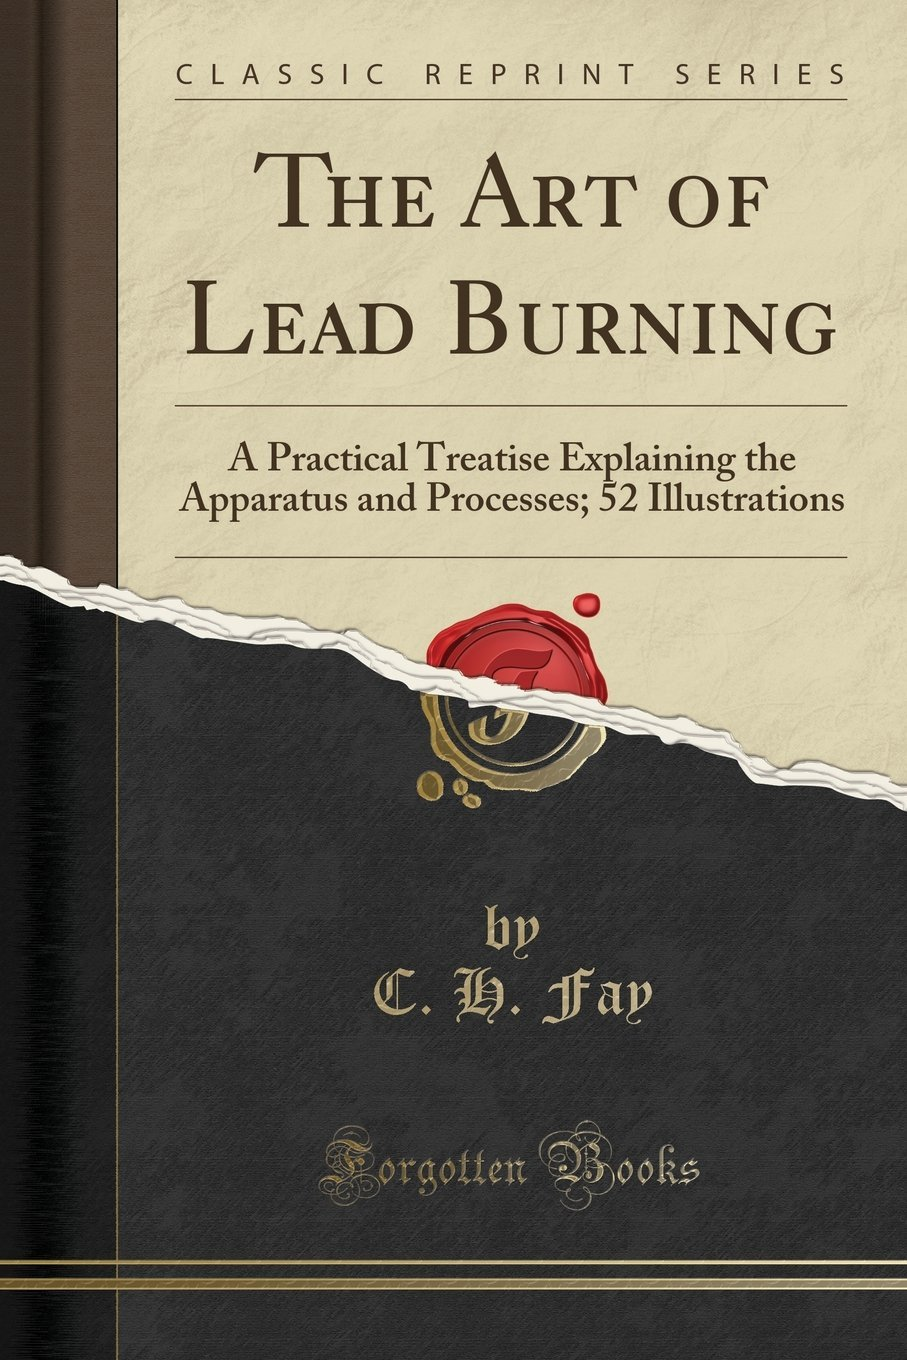 Read Online The Art of Lead Burning: A Practical Treatise Explaining the Apparatus and Processes; 52 Illustrations (Classic Reprint) ebook